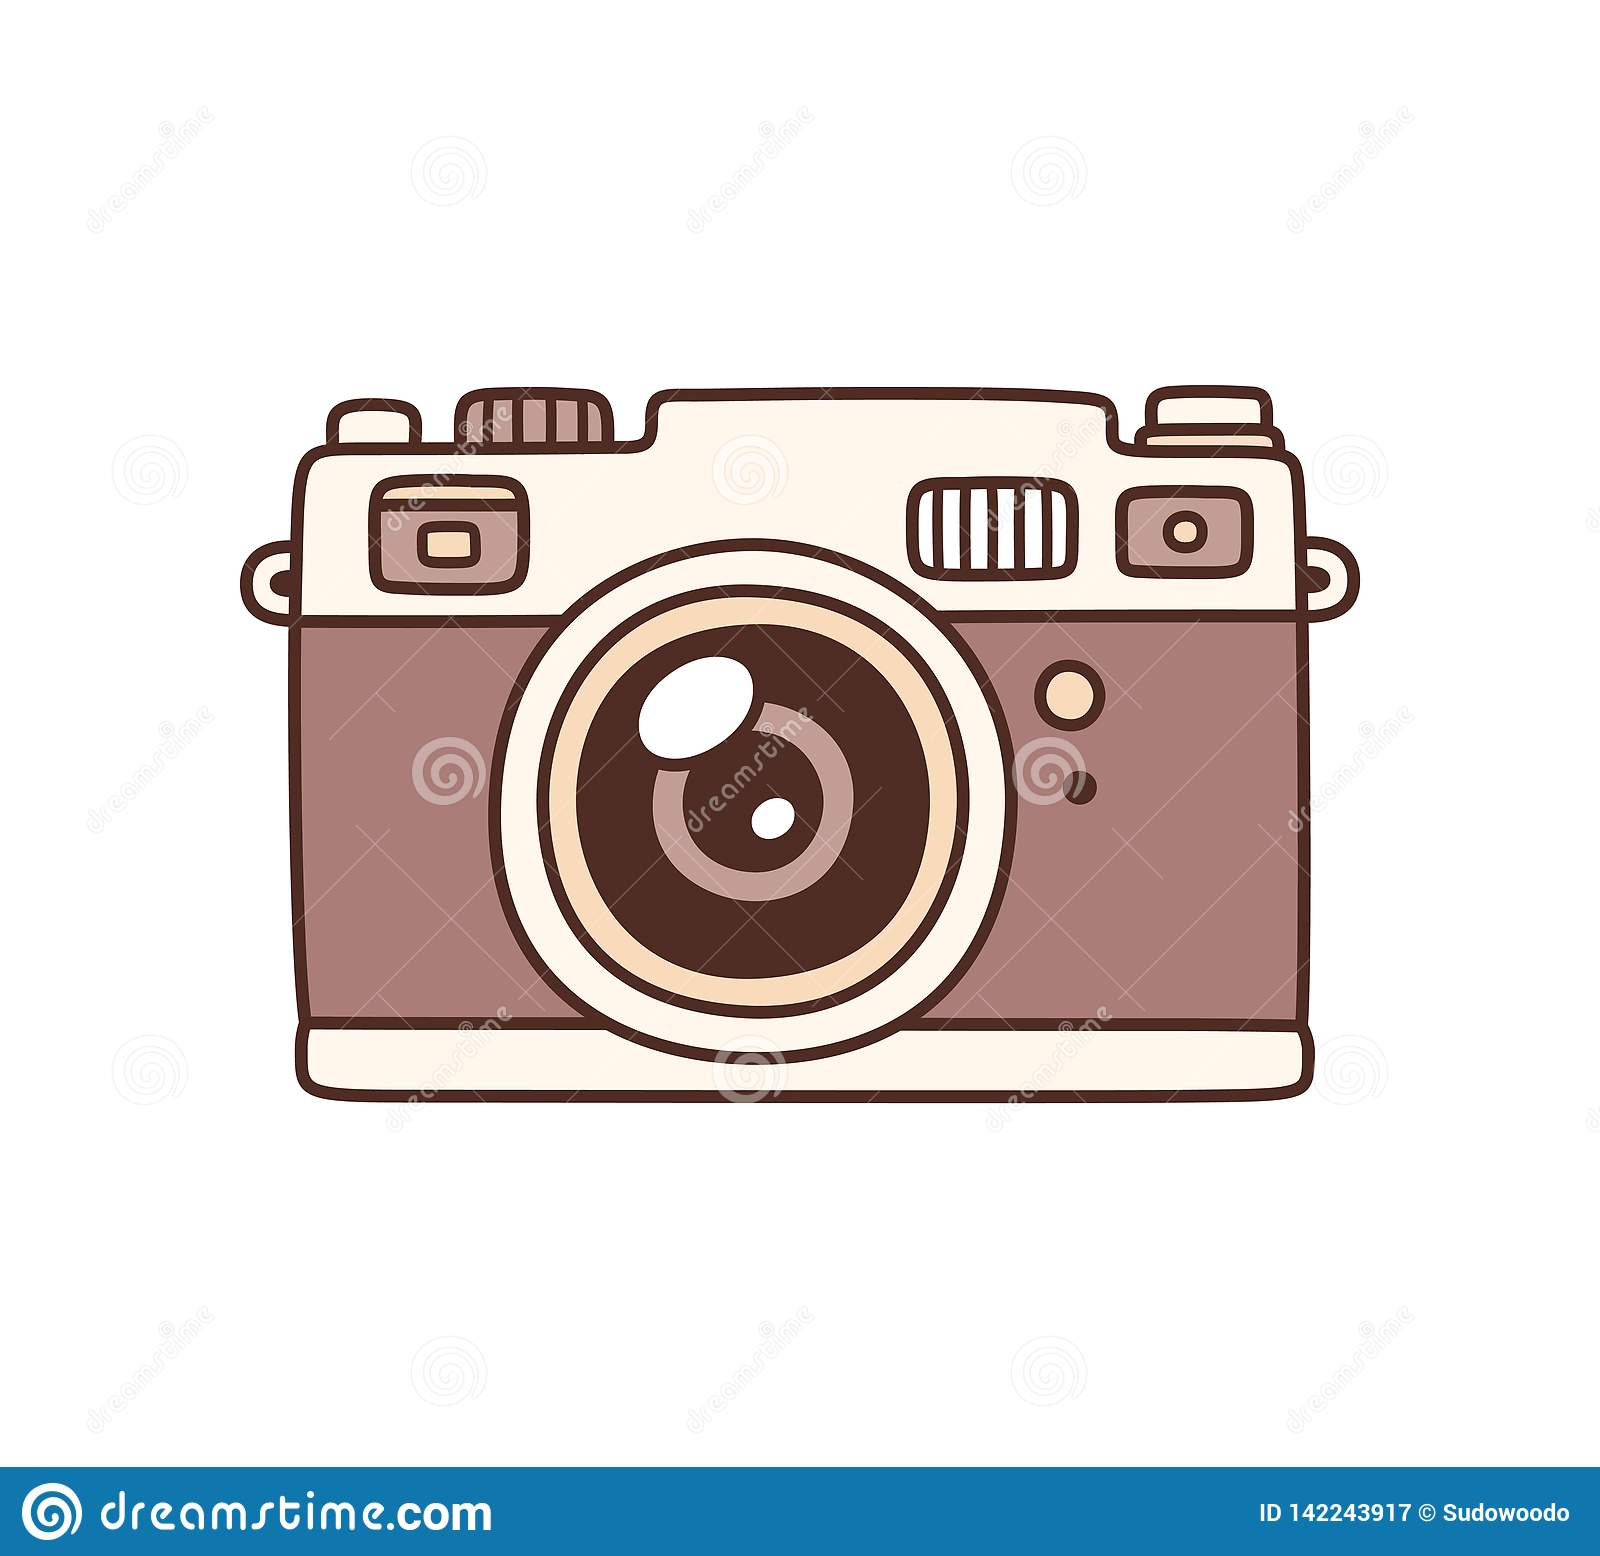 Vintage Photo Camera Stock Vector Illustration Of Doodle 142243917